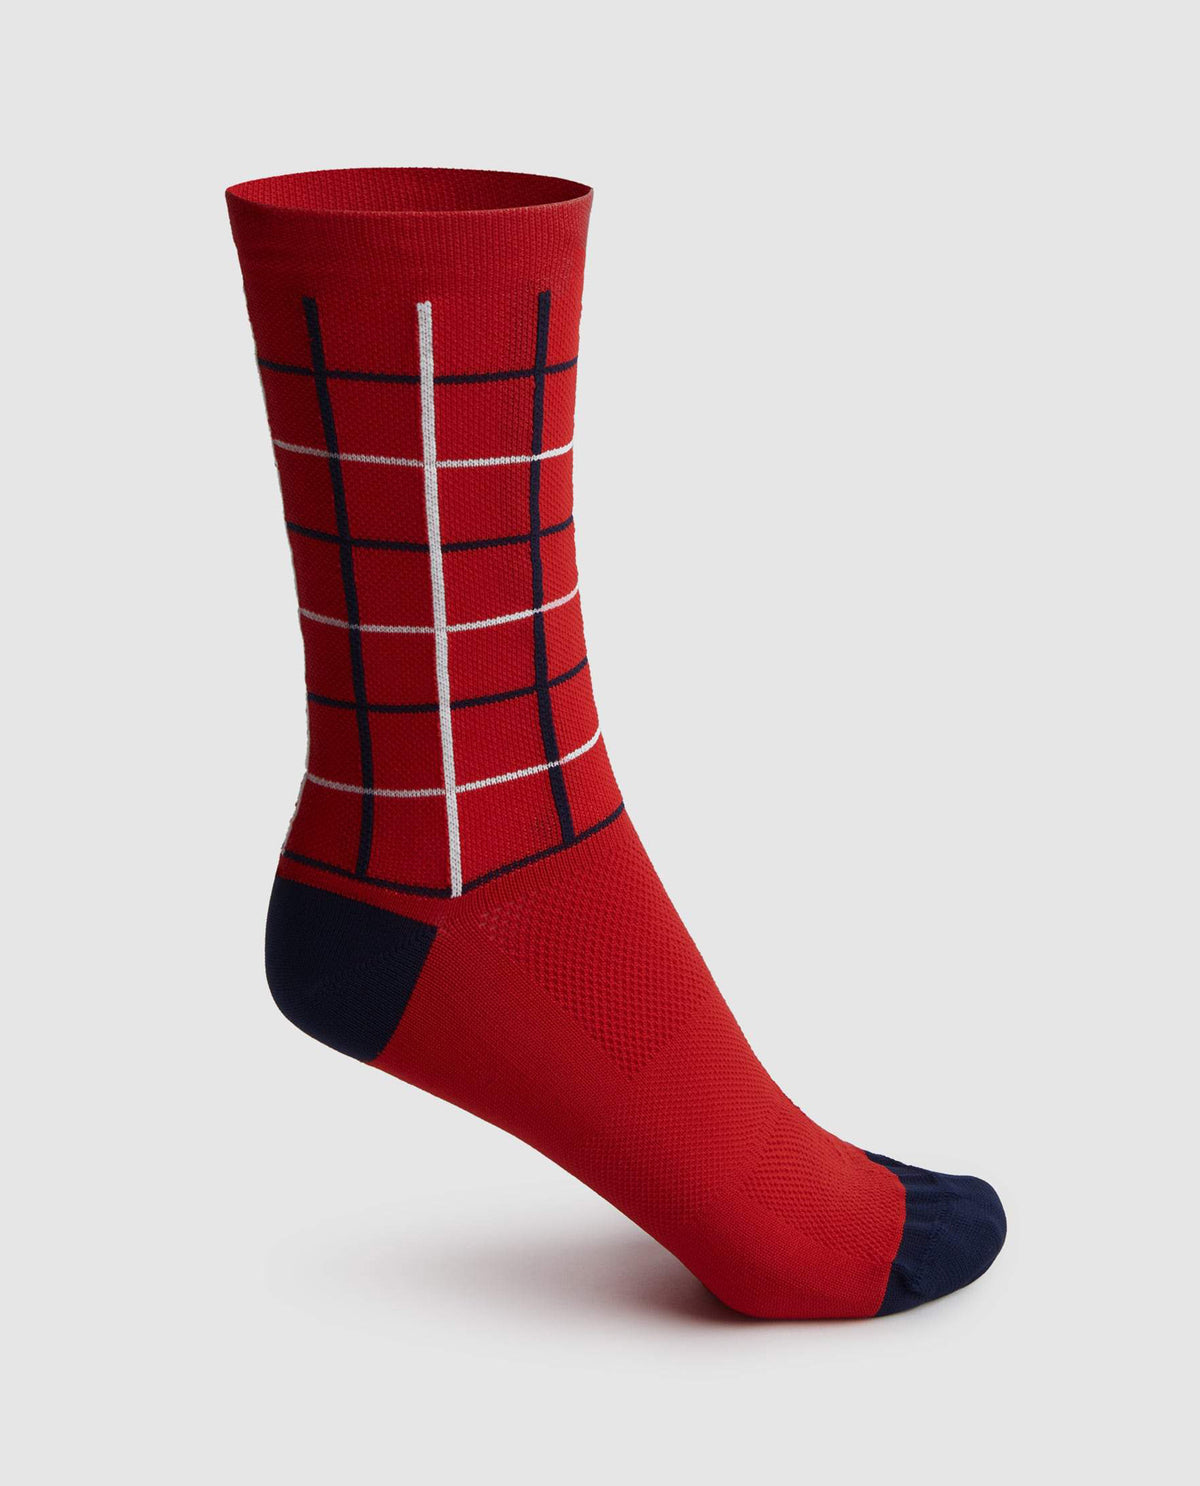 Square Socks Red